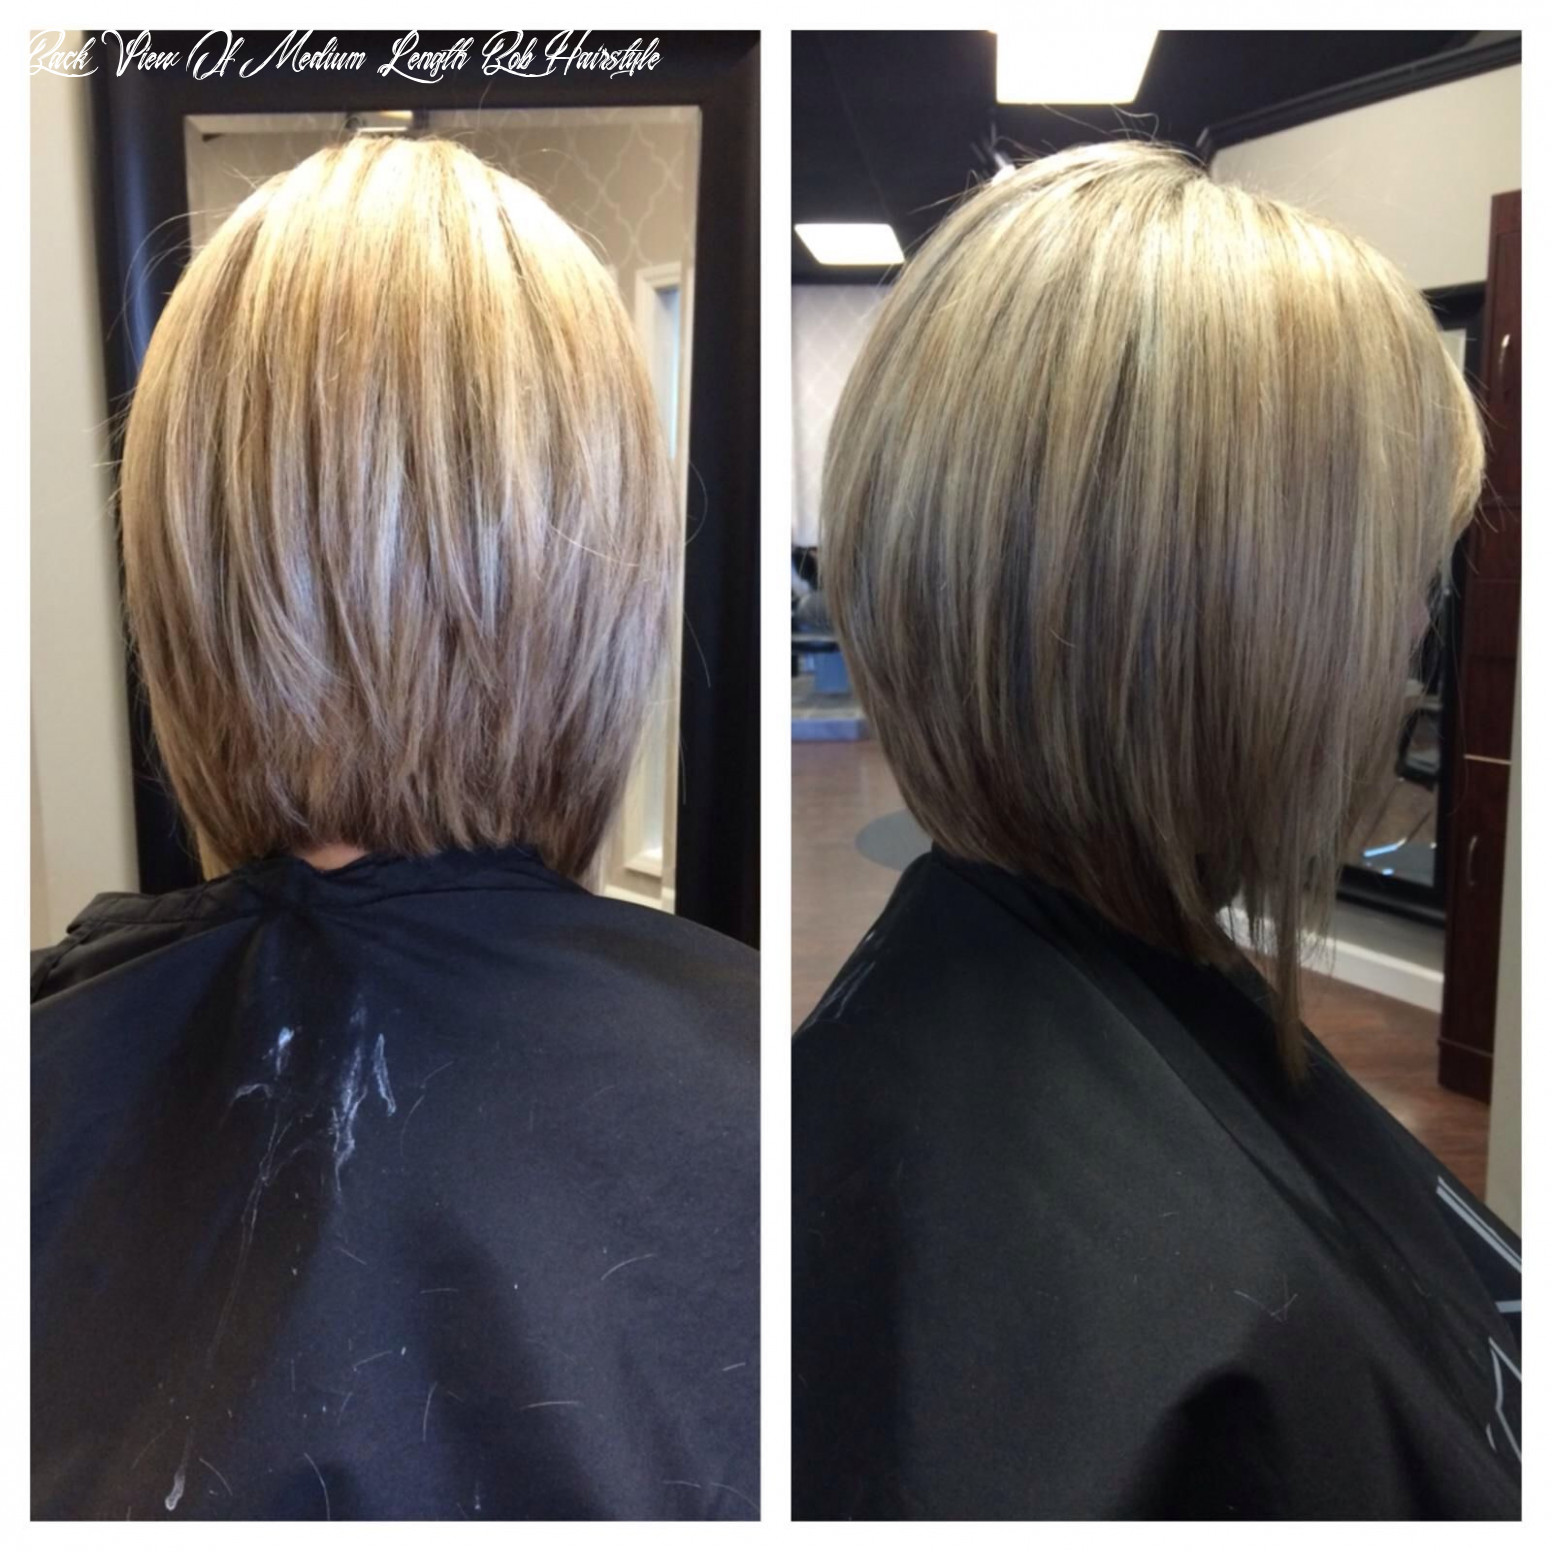 Long inverted bob (with images) | bob haircut back view, thick